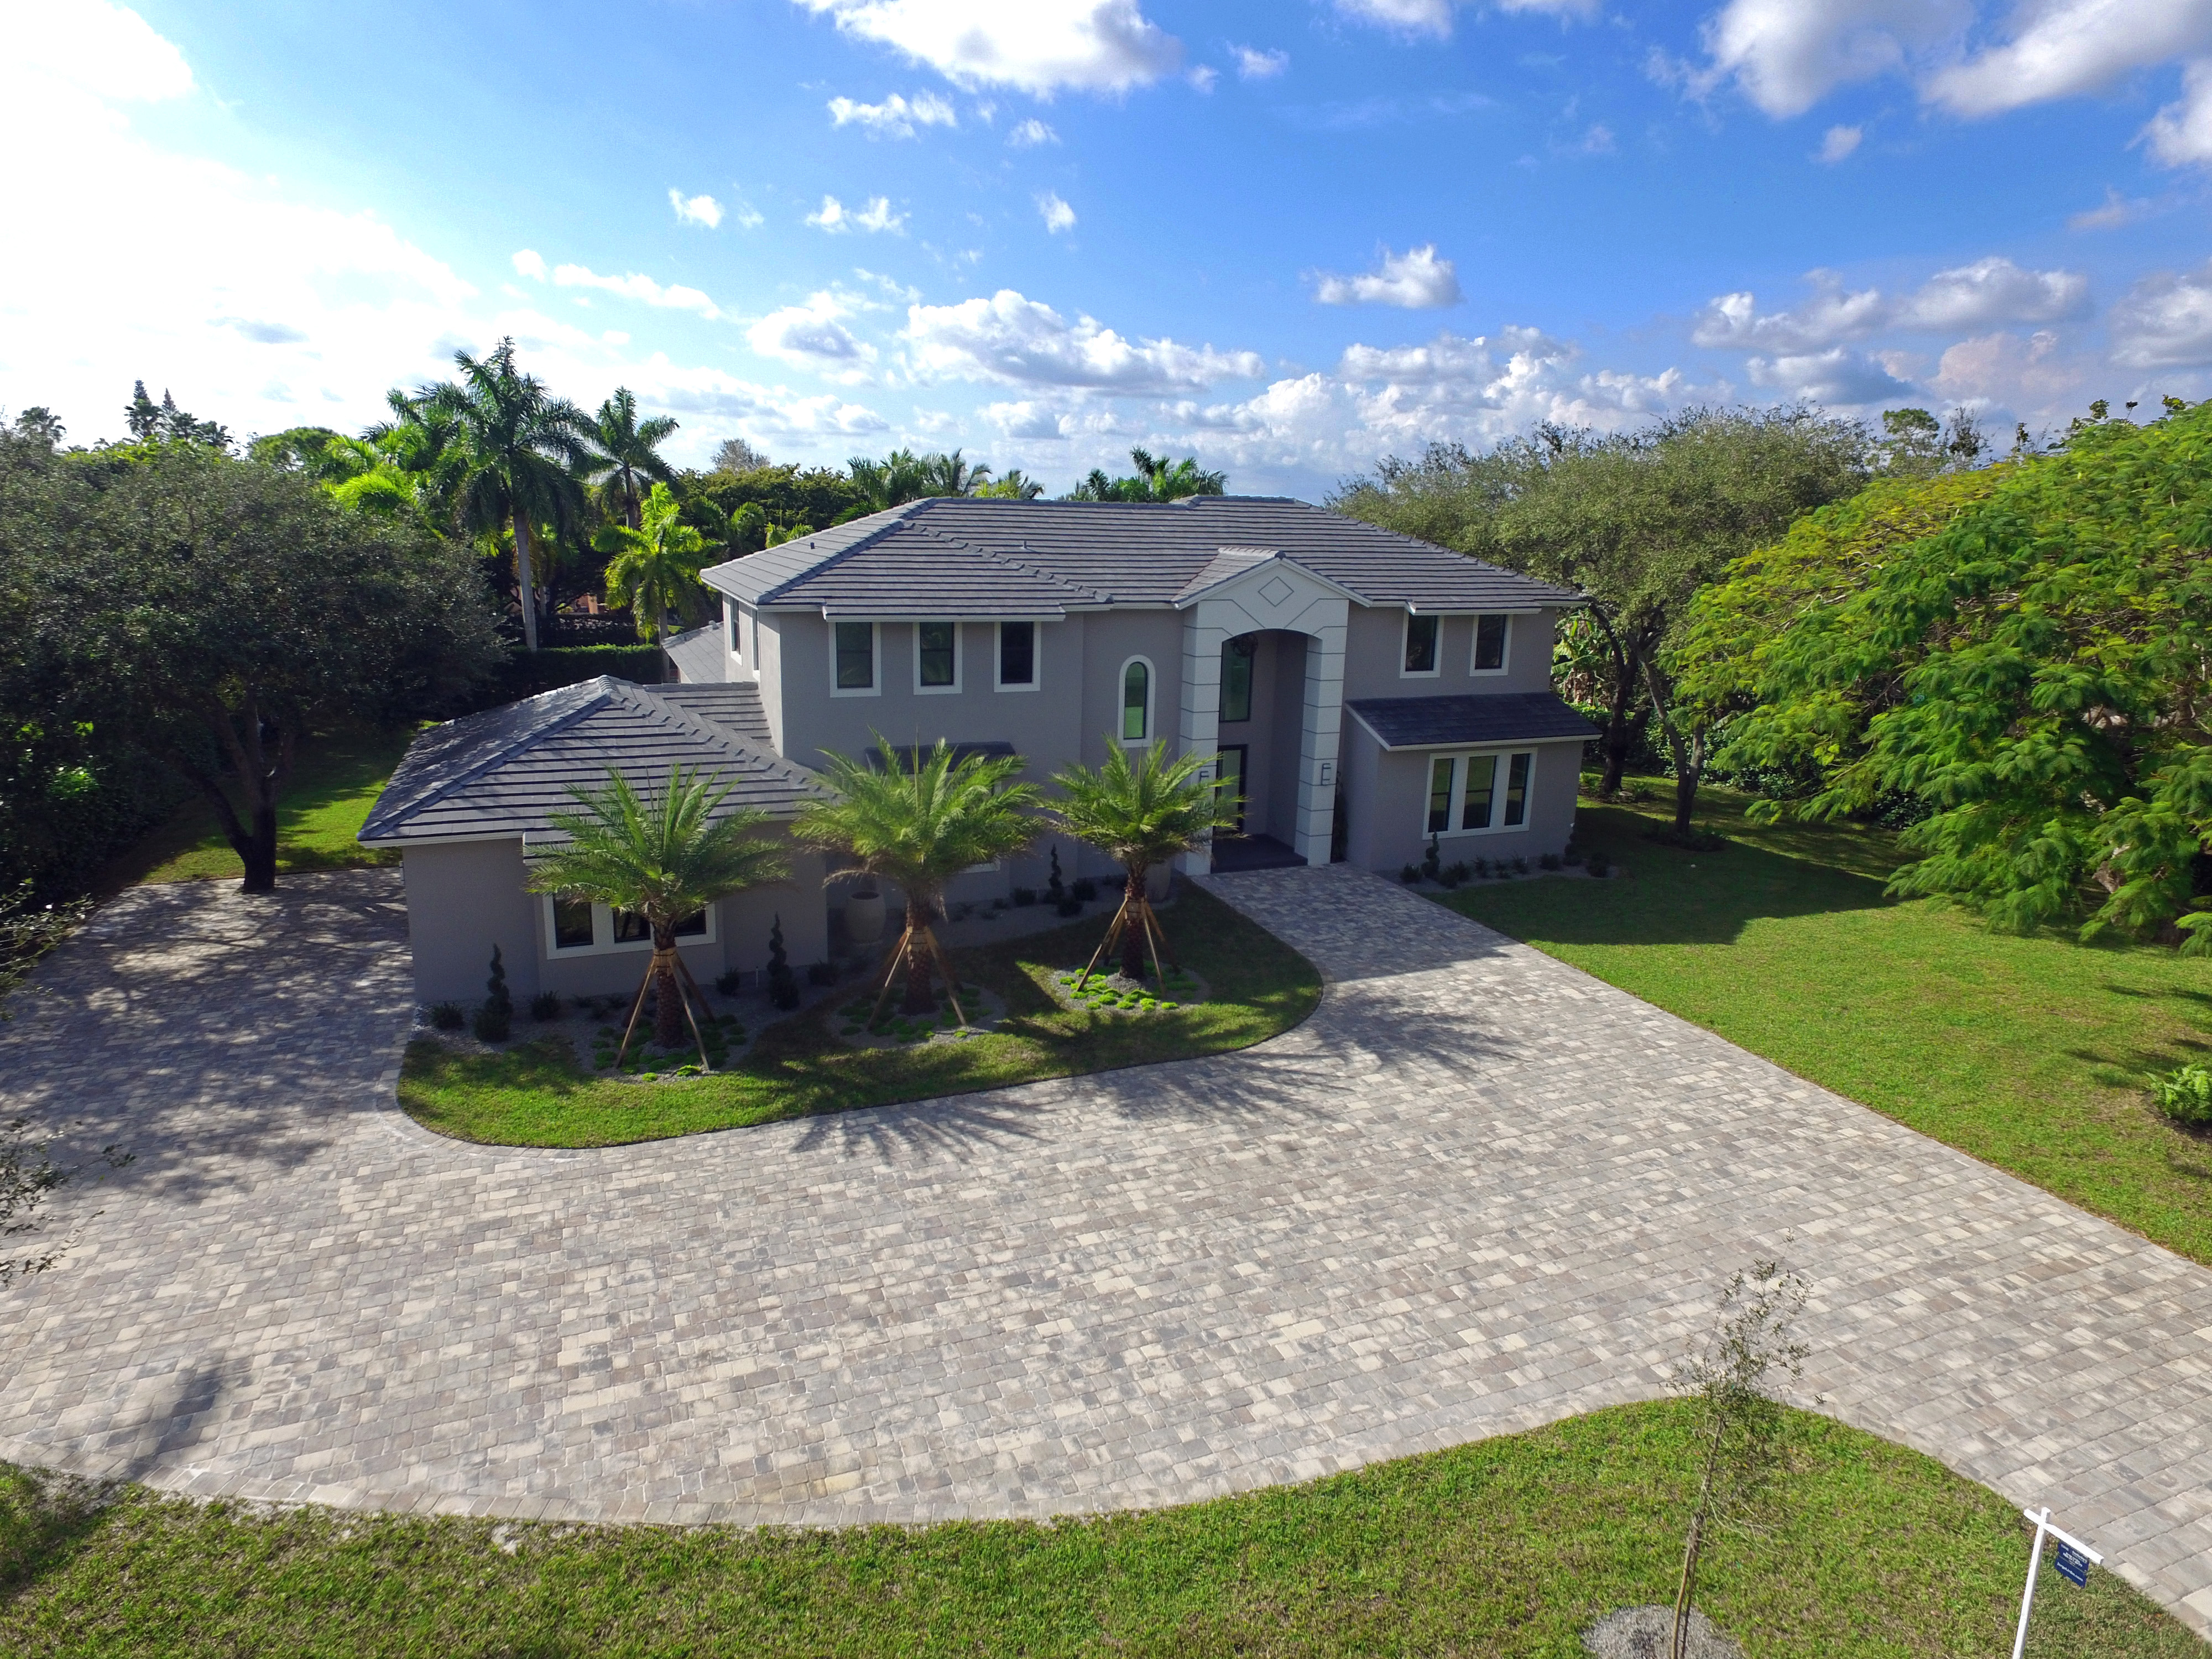 open-houses property at 9500 Sw 94 Ct